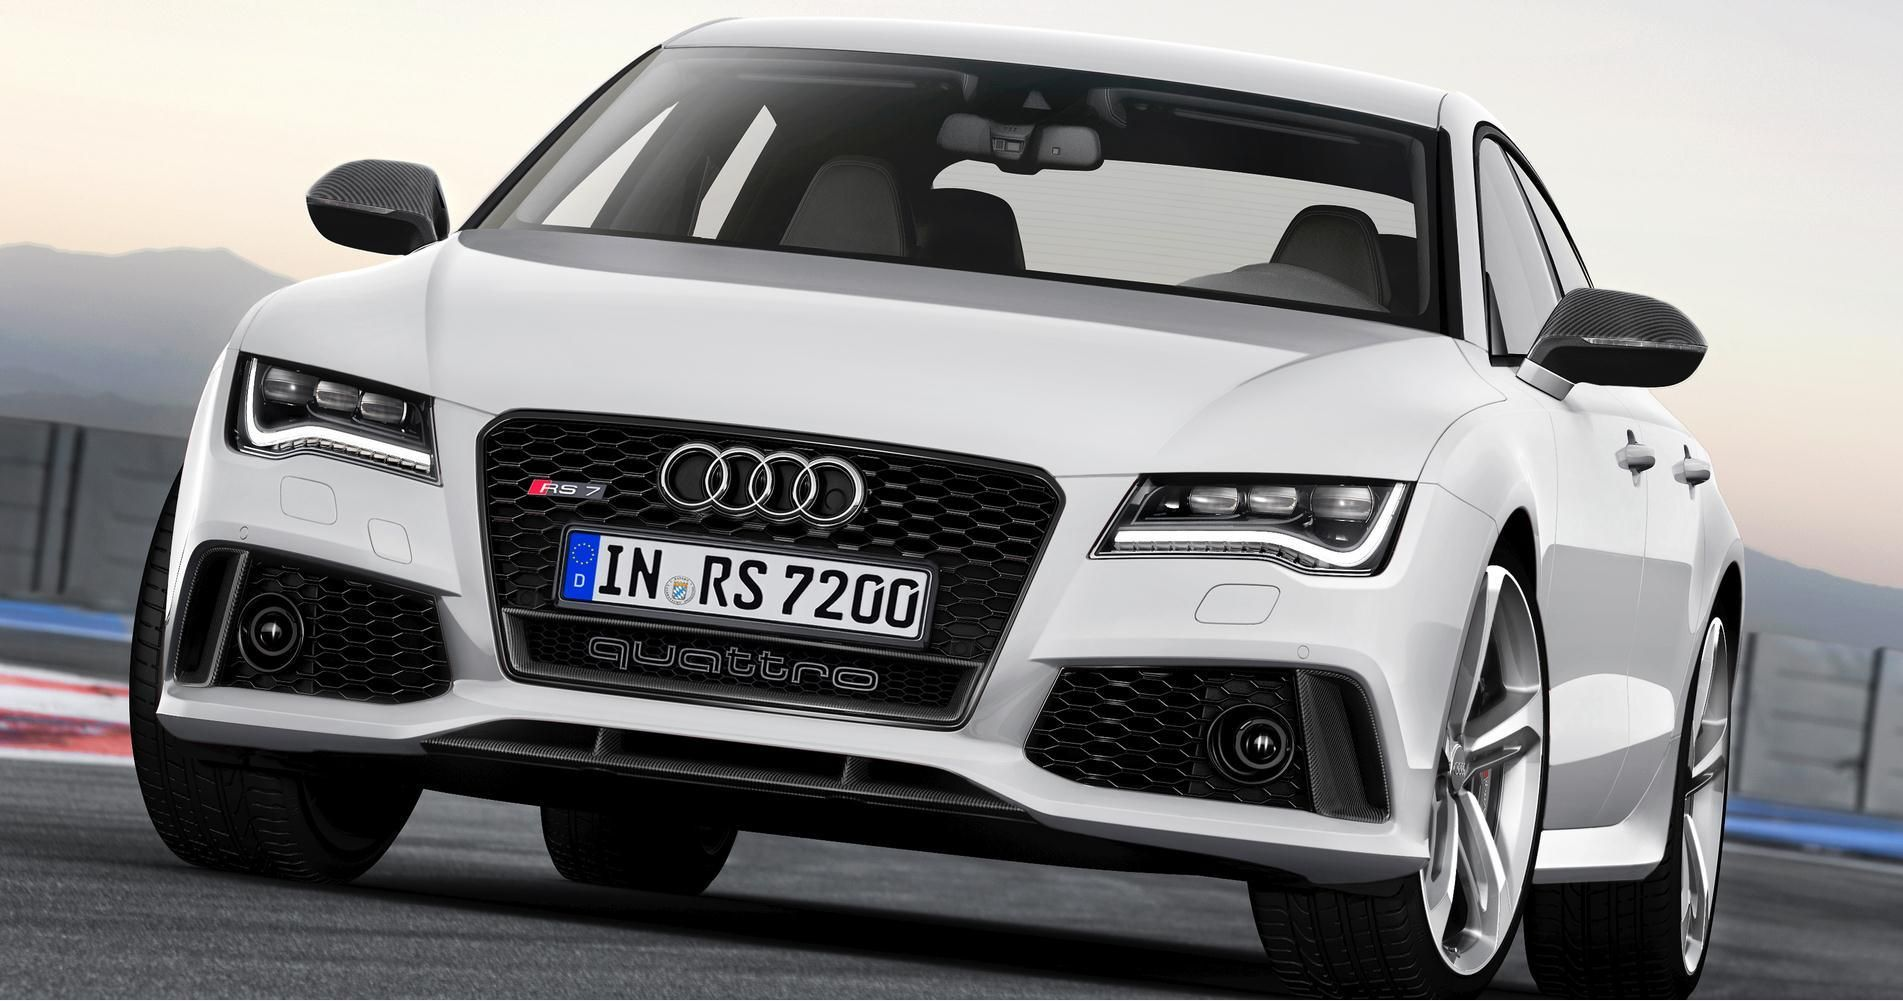 Audi a1 specification price review feature audi rs7